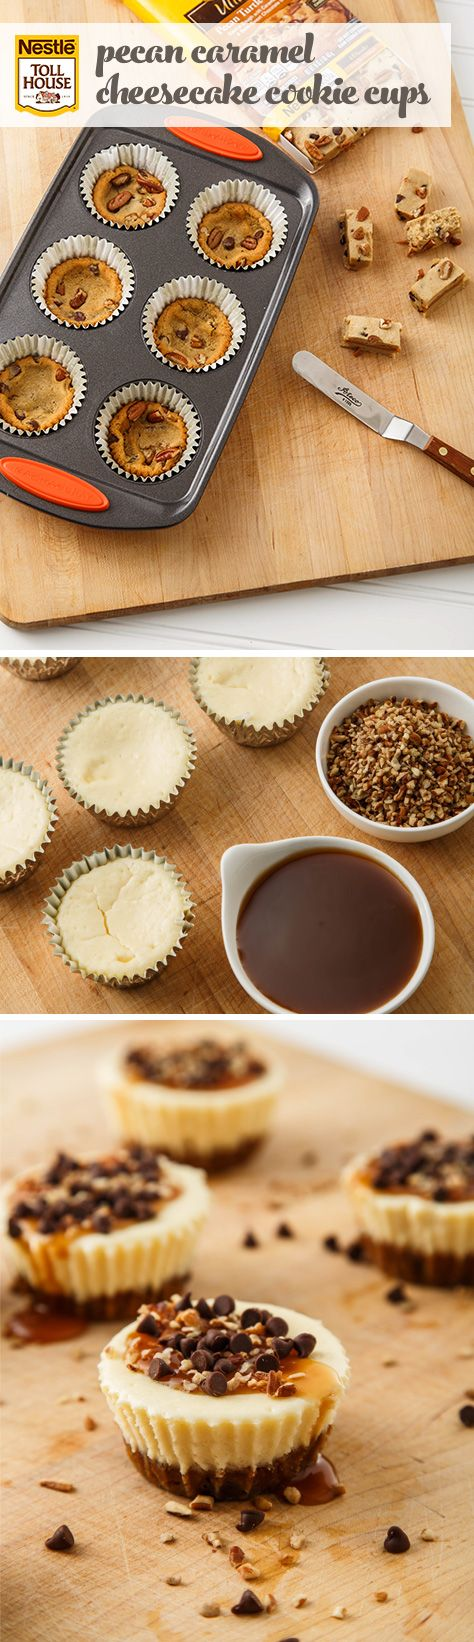 Pecan Caramel Cheesecake Cookie Cups (could do in mini muffin tin for great party dessert)